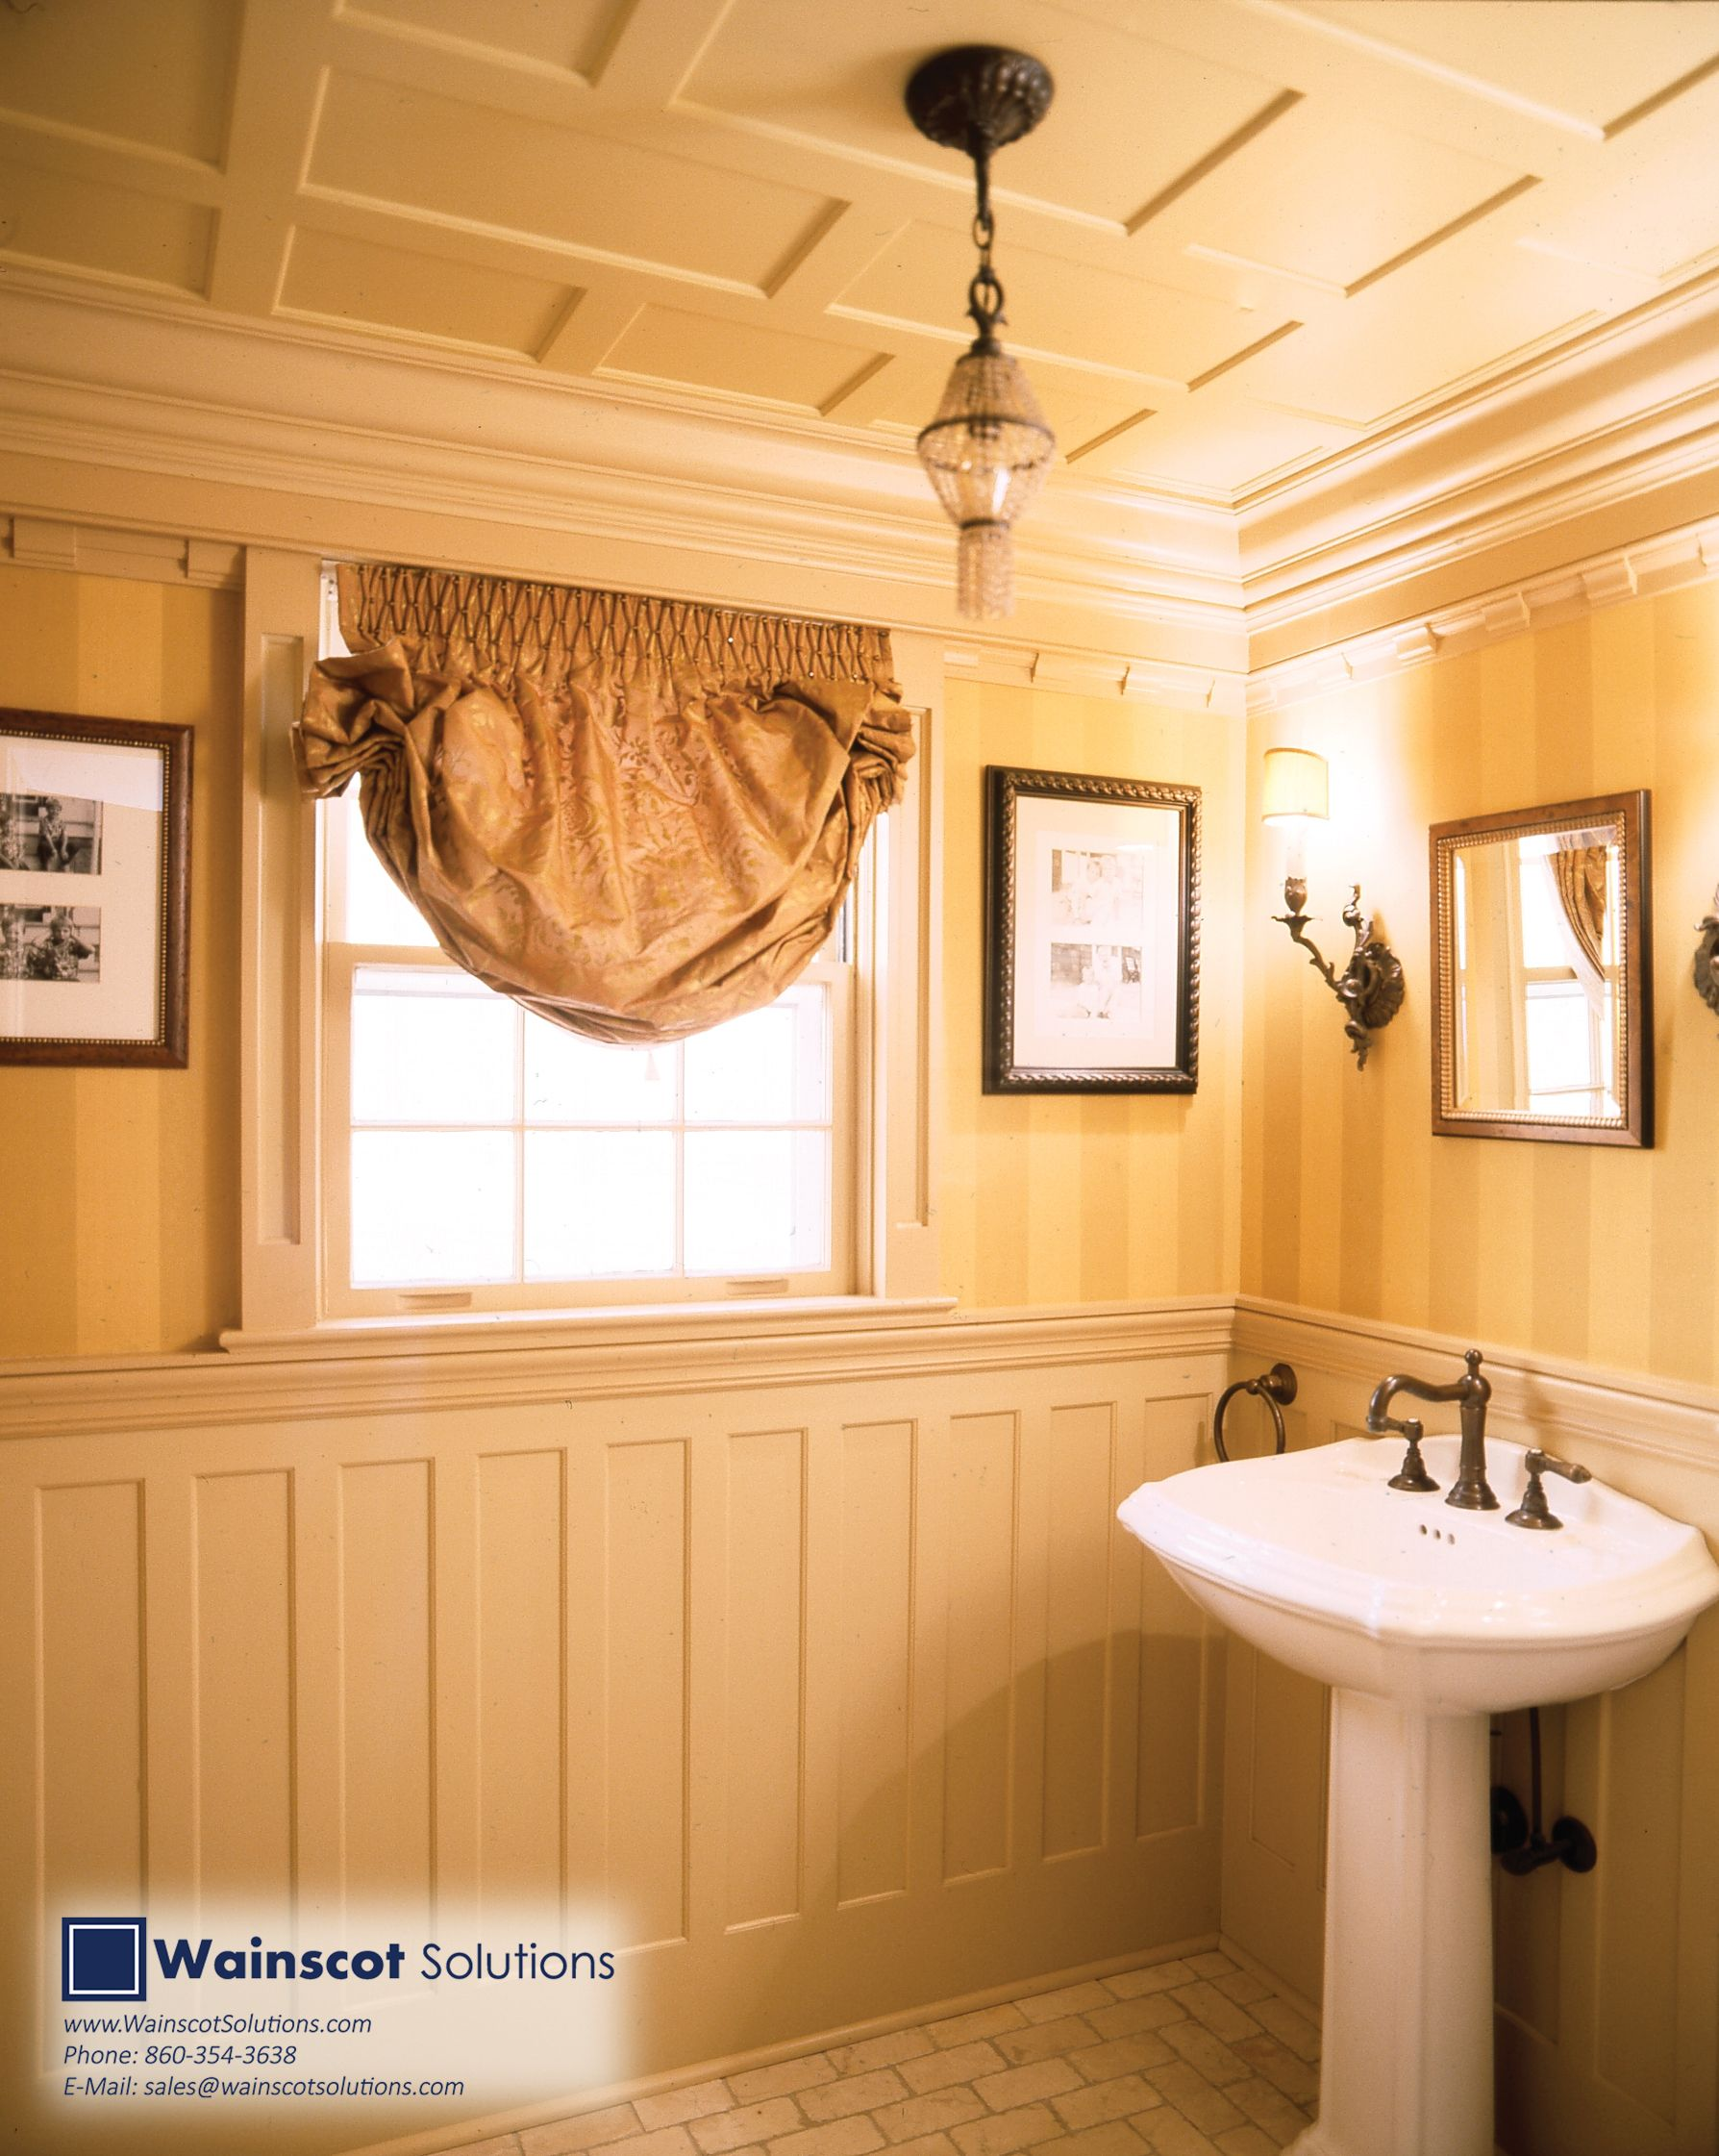 Add the best in architectural design to your bathroom with